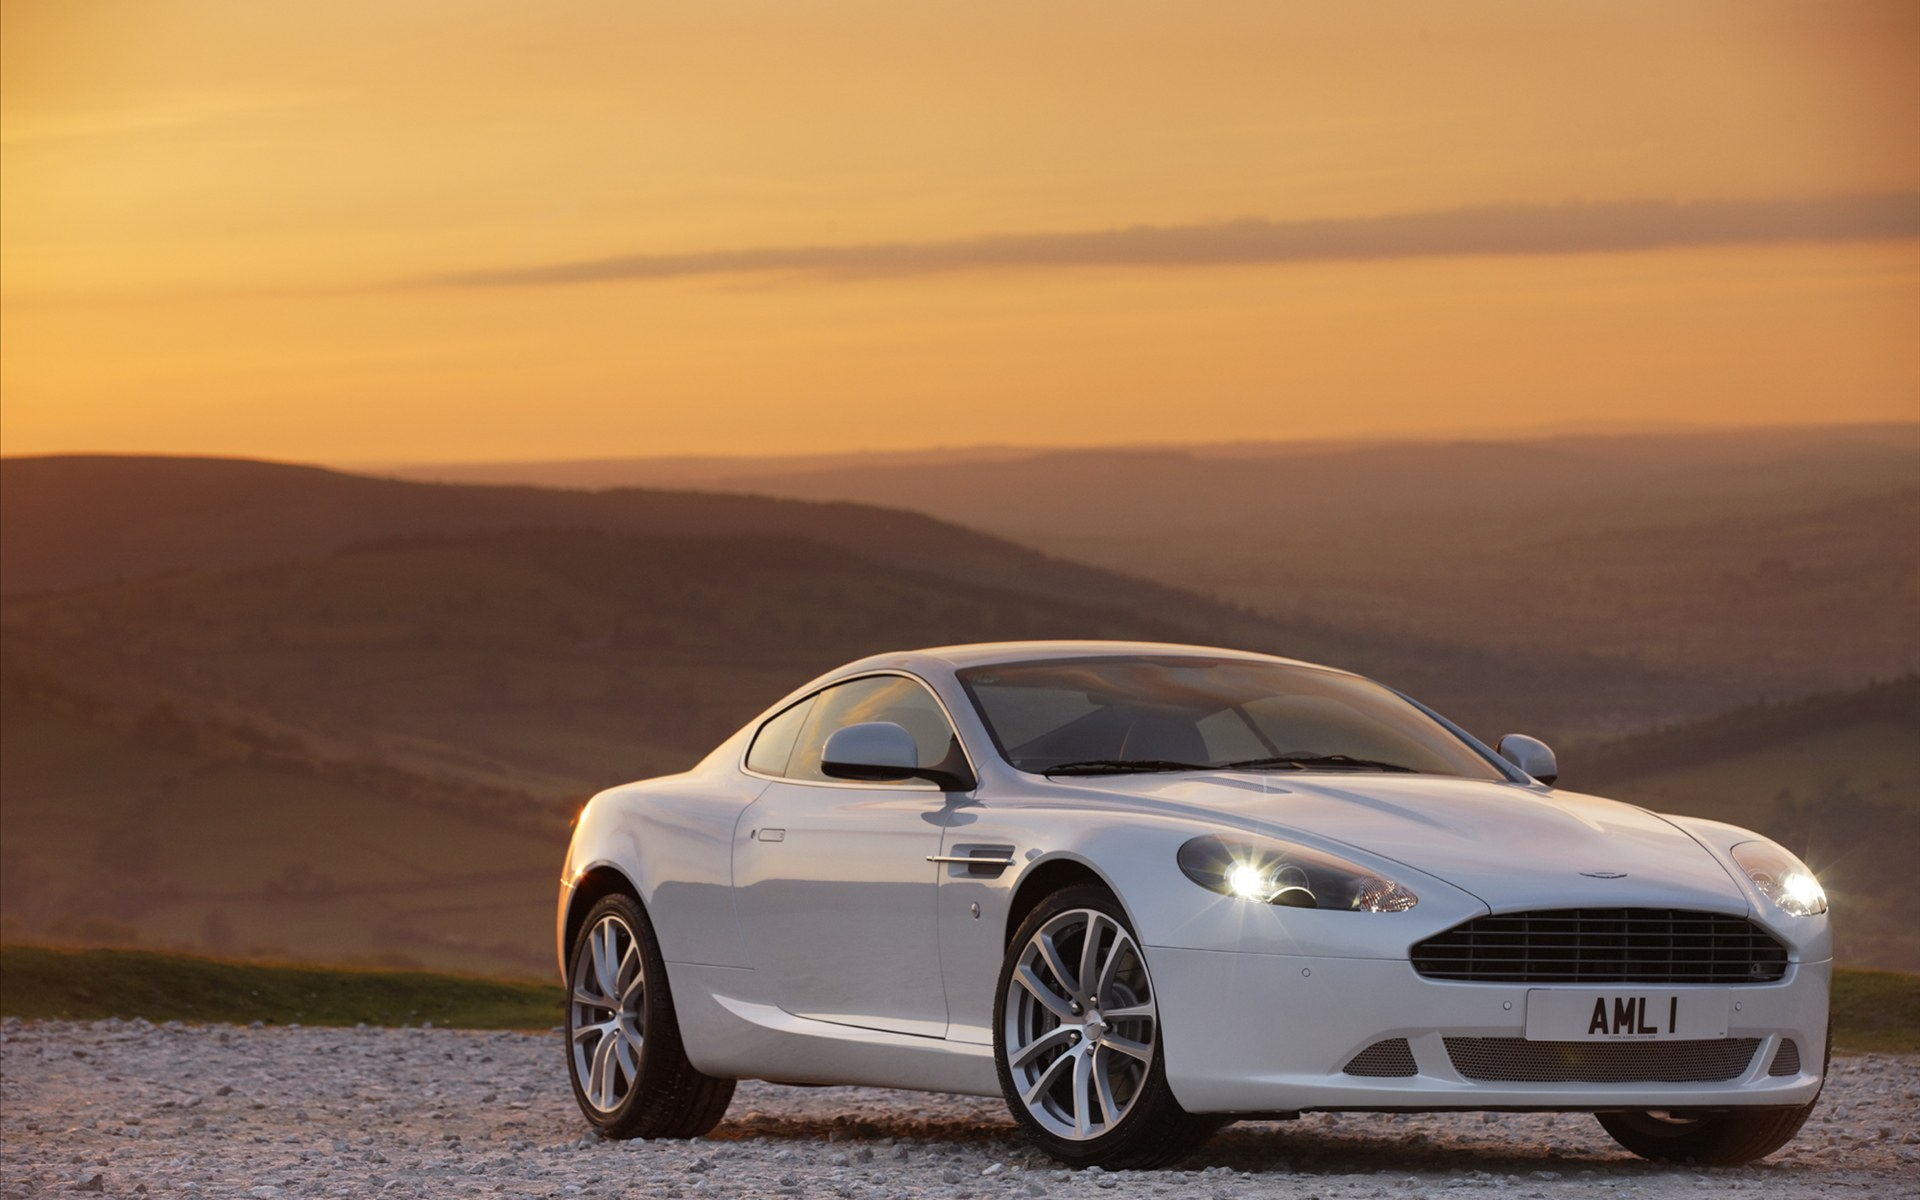 Aston Martin DB9 Wallpapers, Pictures, Images